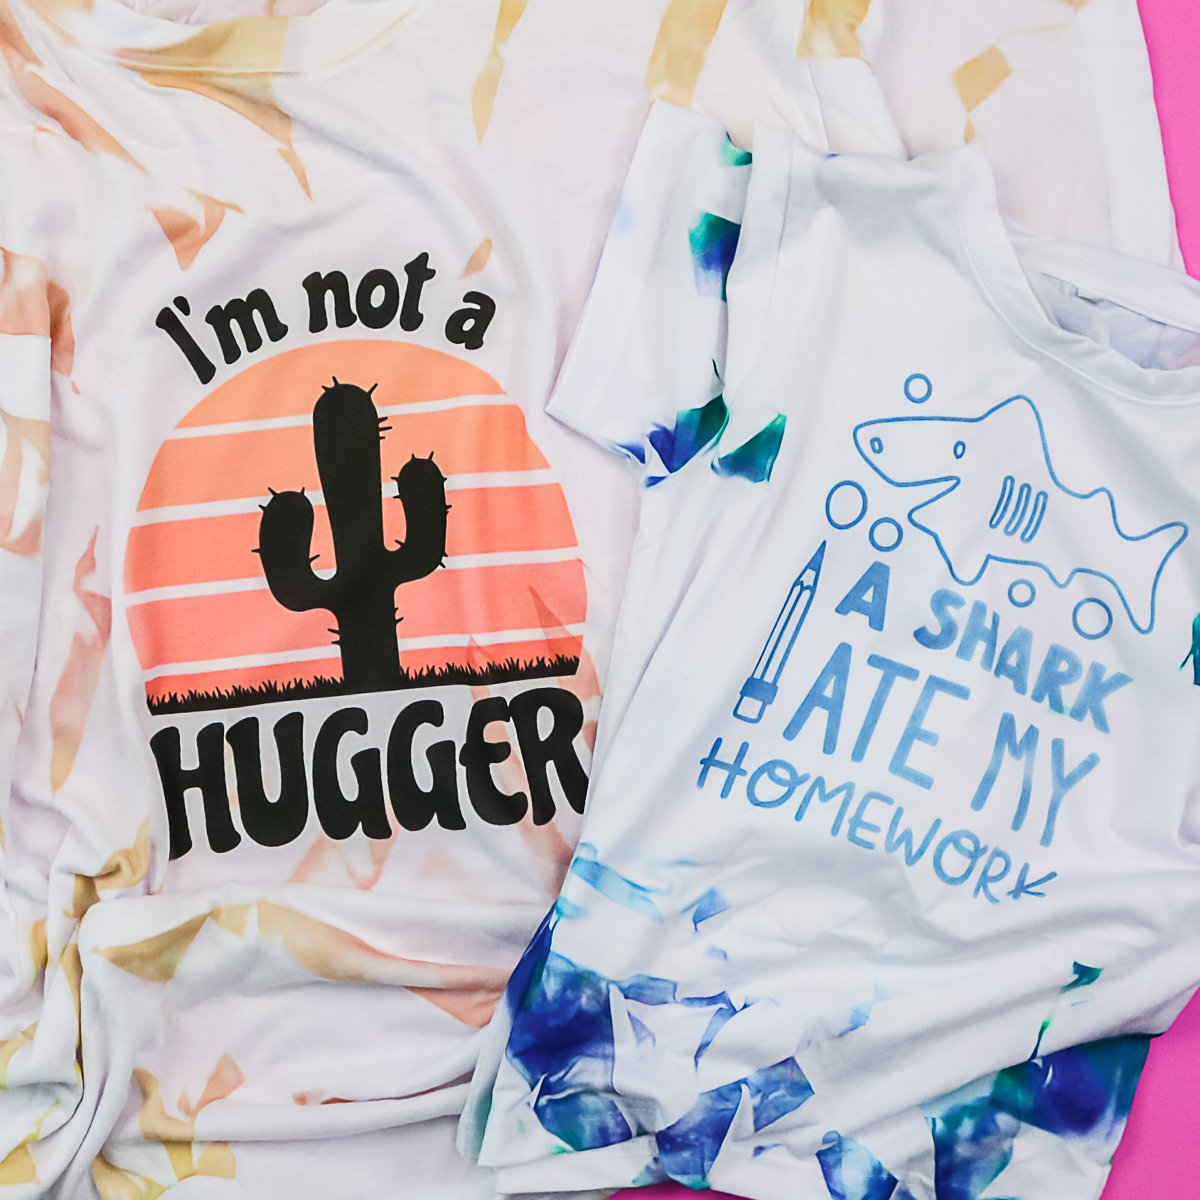 shirts with sublimation tie dye technique